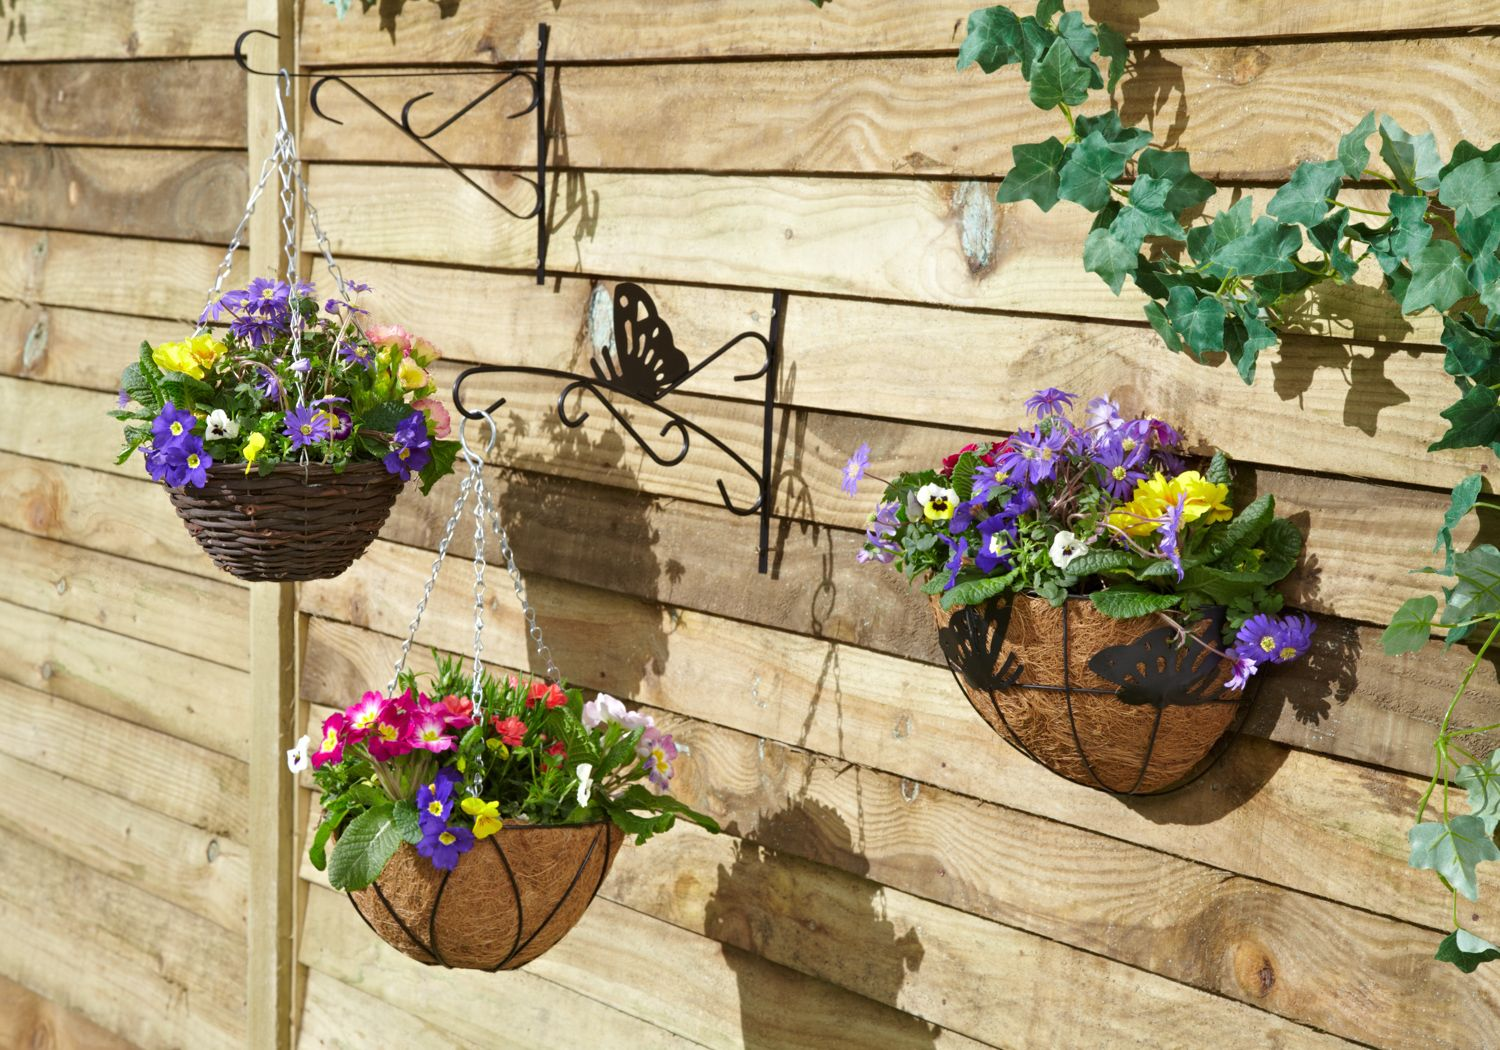 Hanging baskets: add colour to your garden, tips from David Domoney